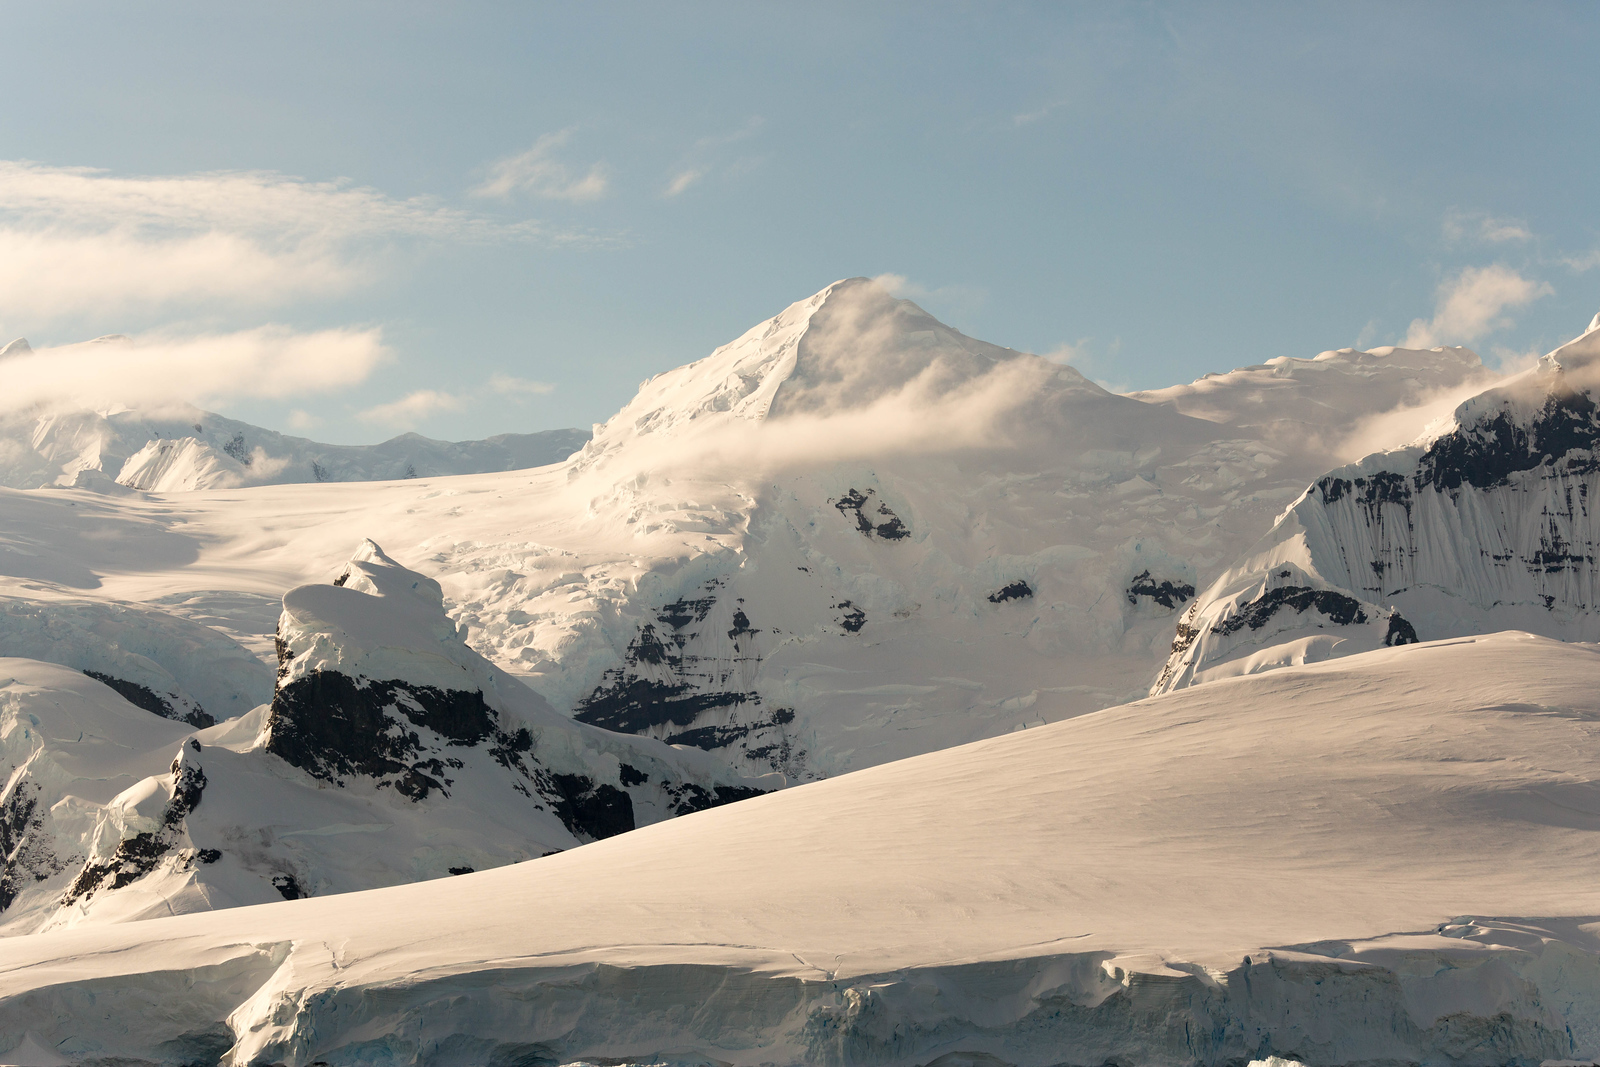 You'll see stunning mountain scenery on a cruise in Neumayer Channel. It's a beautiful part of an Antarctica cruise.